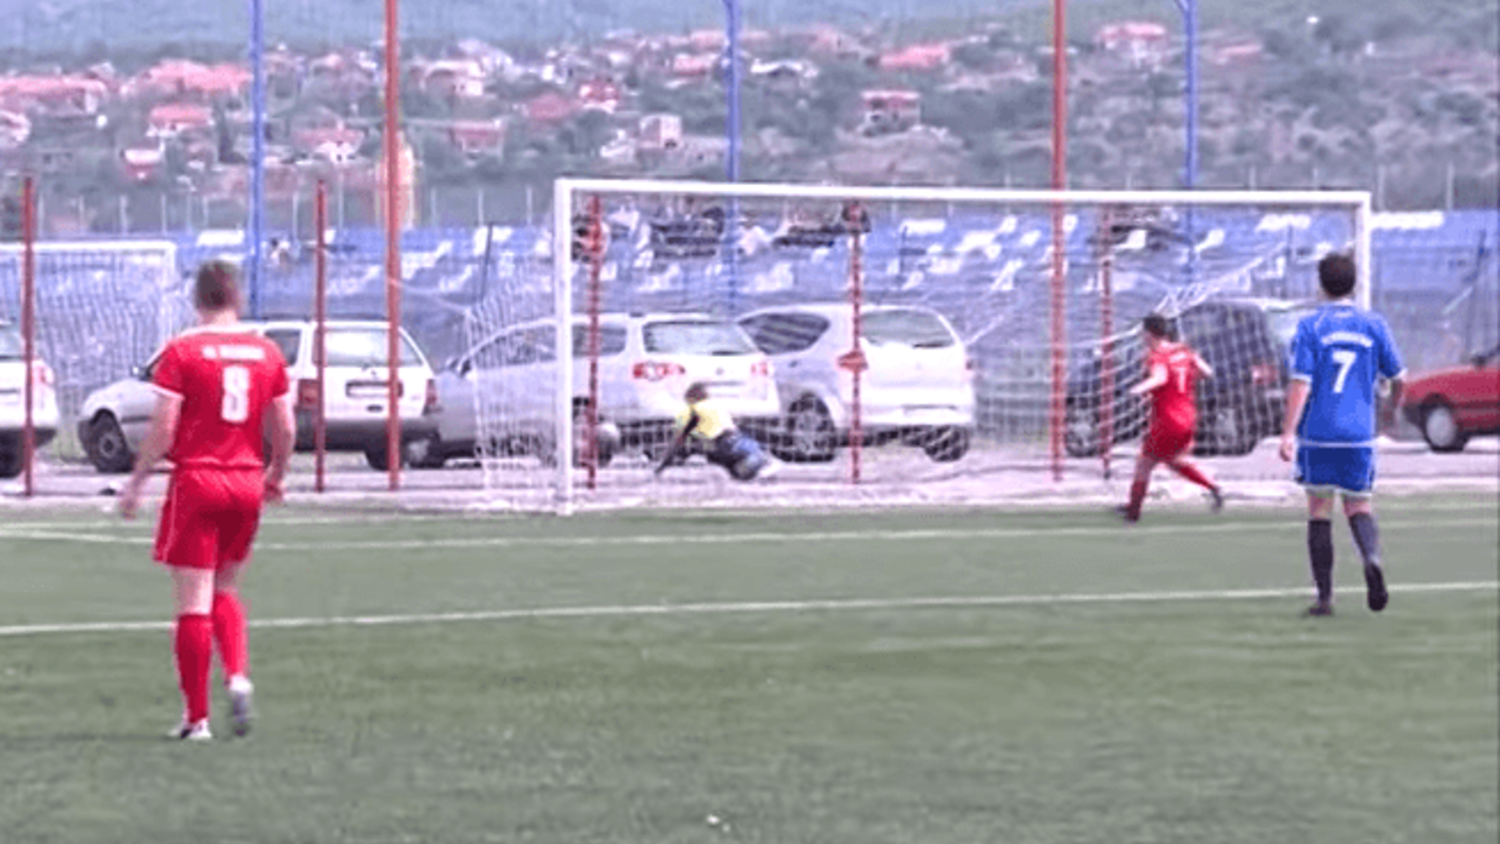 WATCH: This Absolute Howler